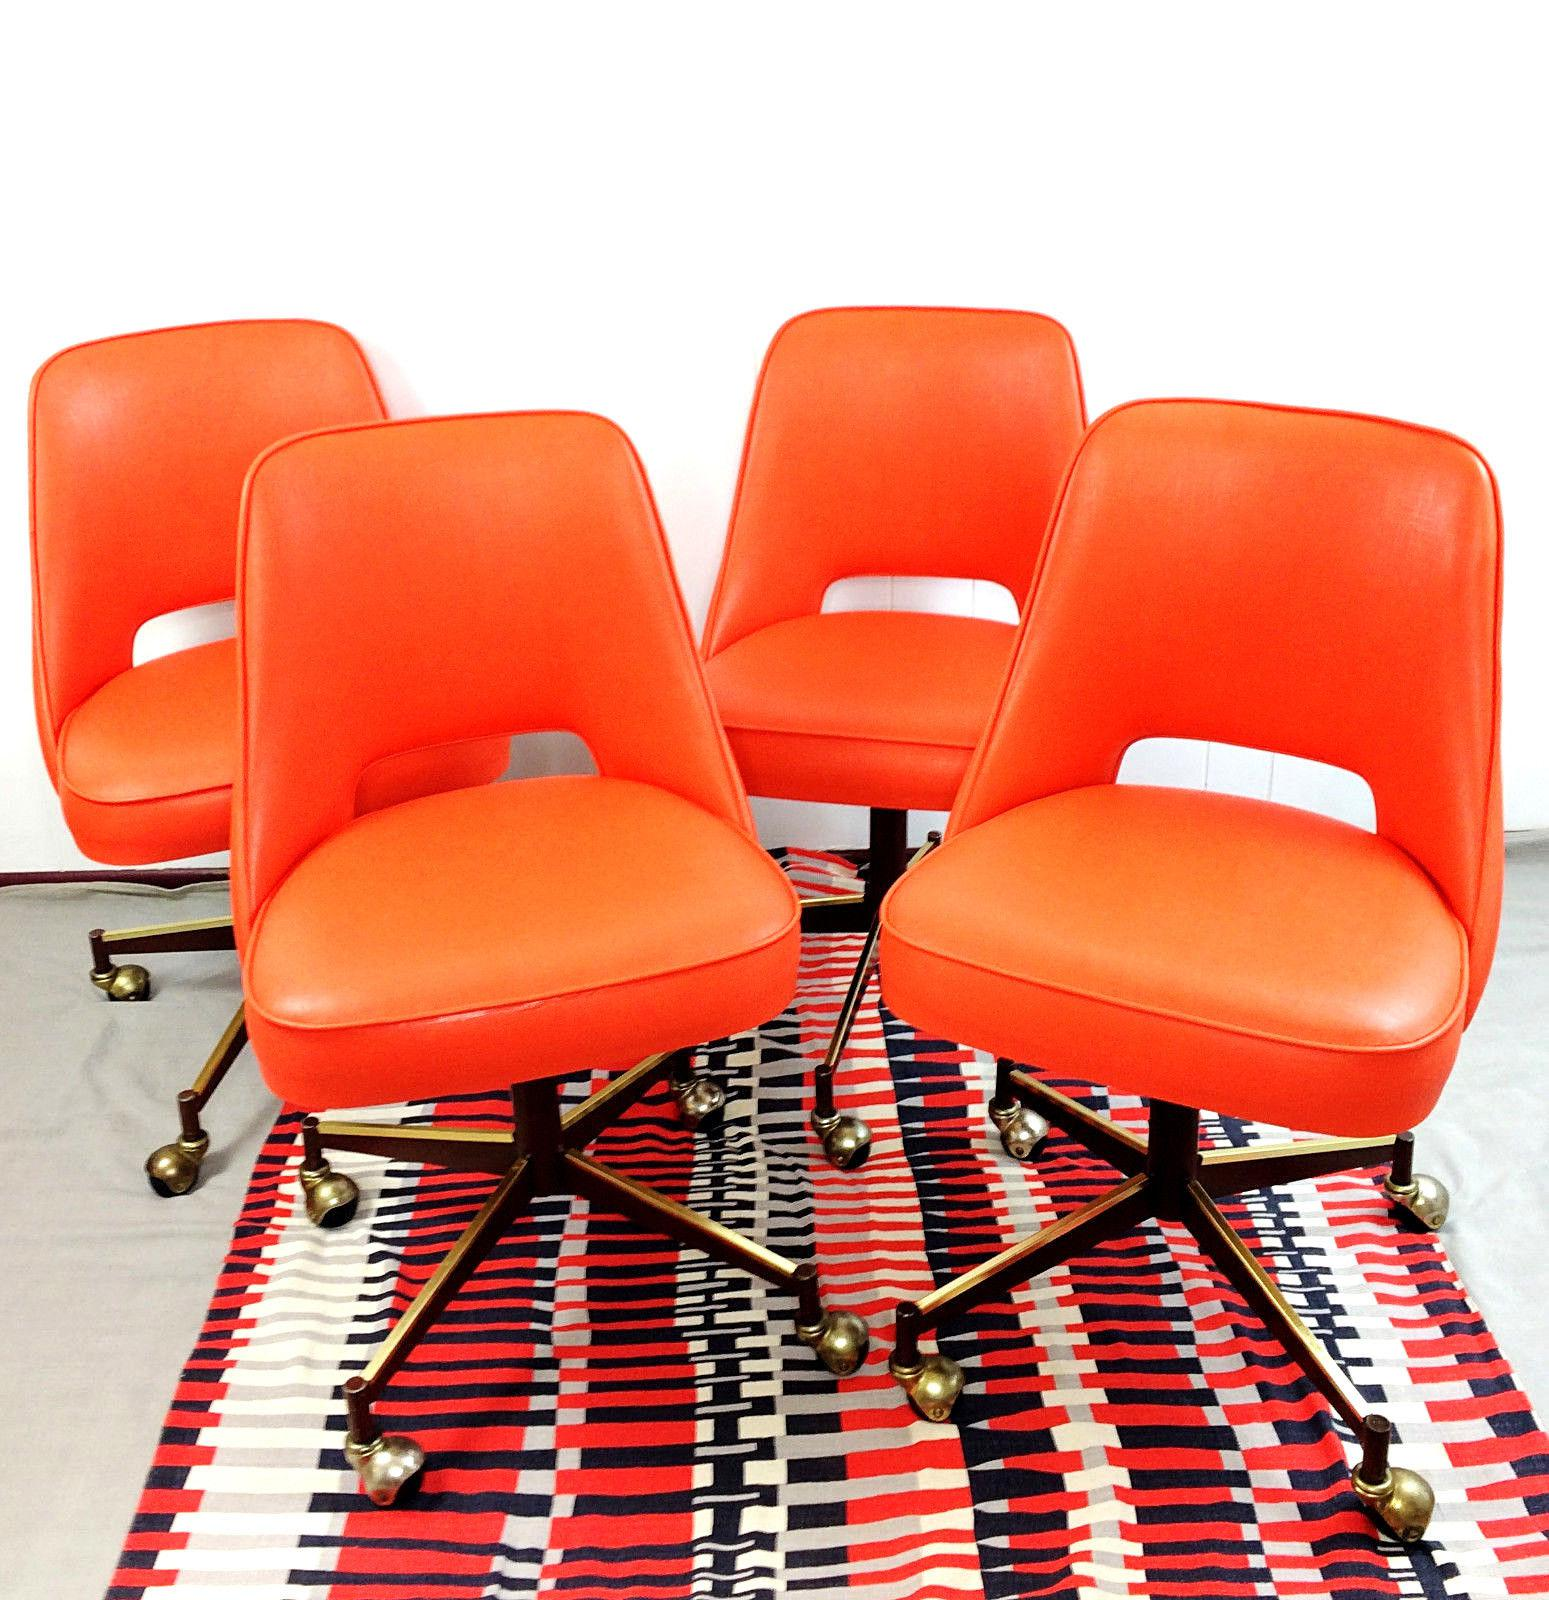 Charmant Mid Century Modern Orange Vinyl Rolling Bucket Dining Chairs   Set Of 4    Image